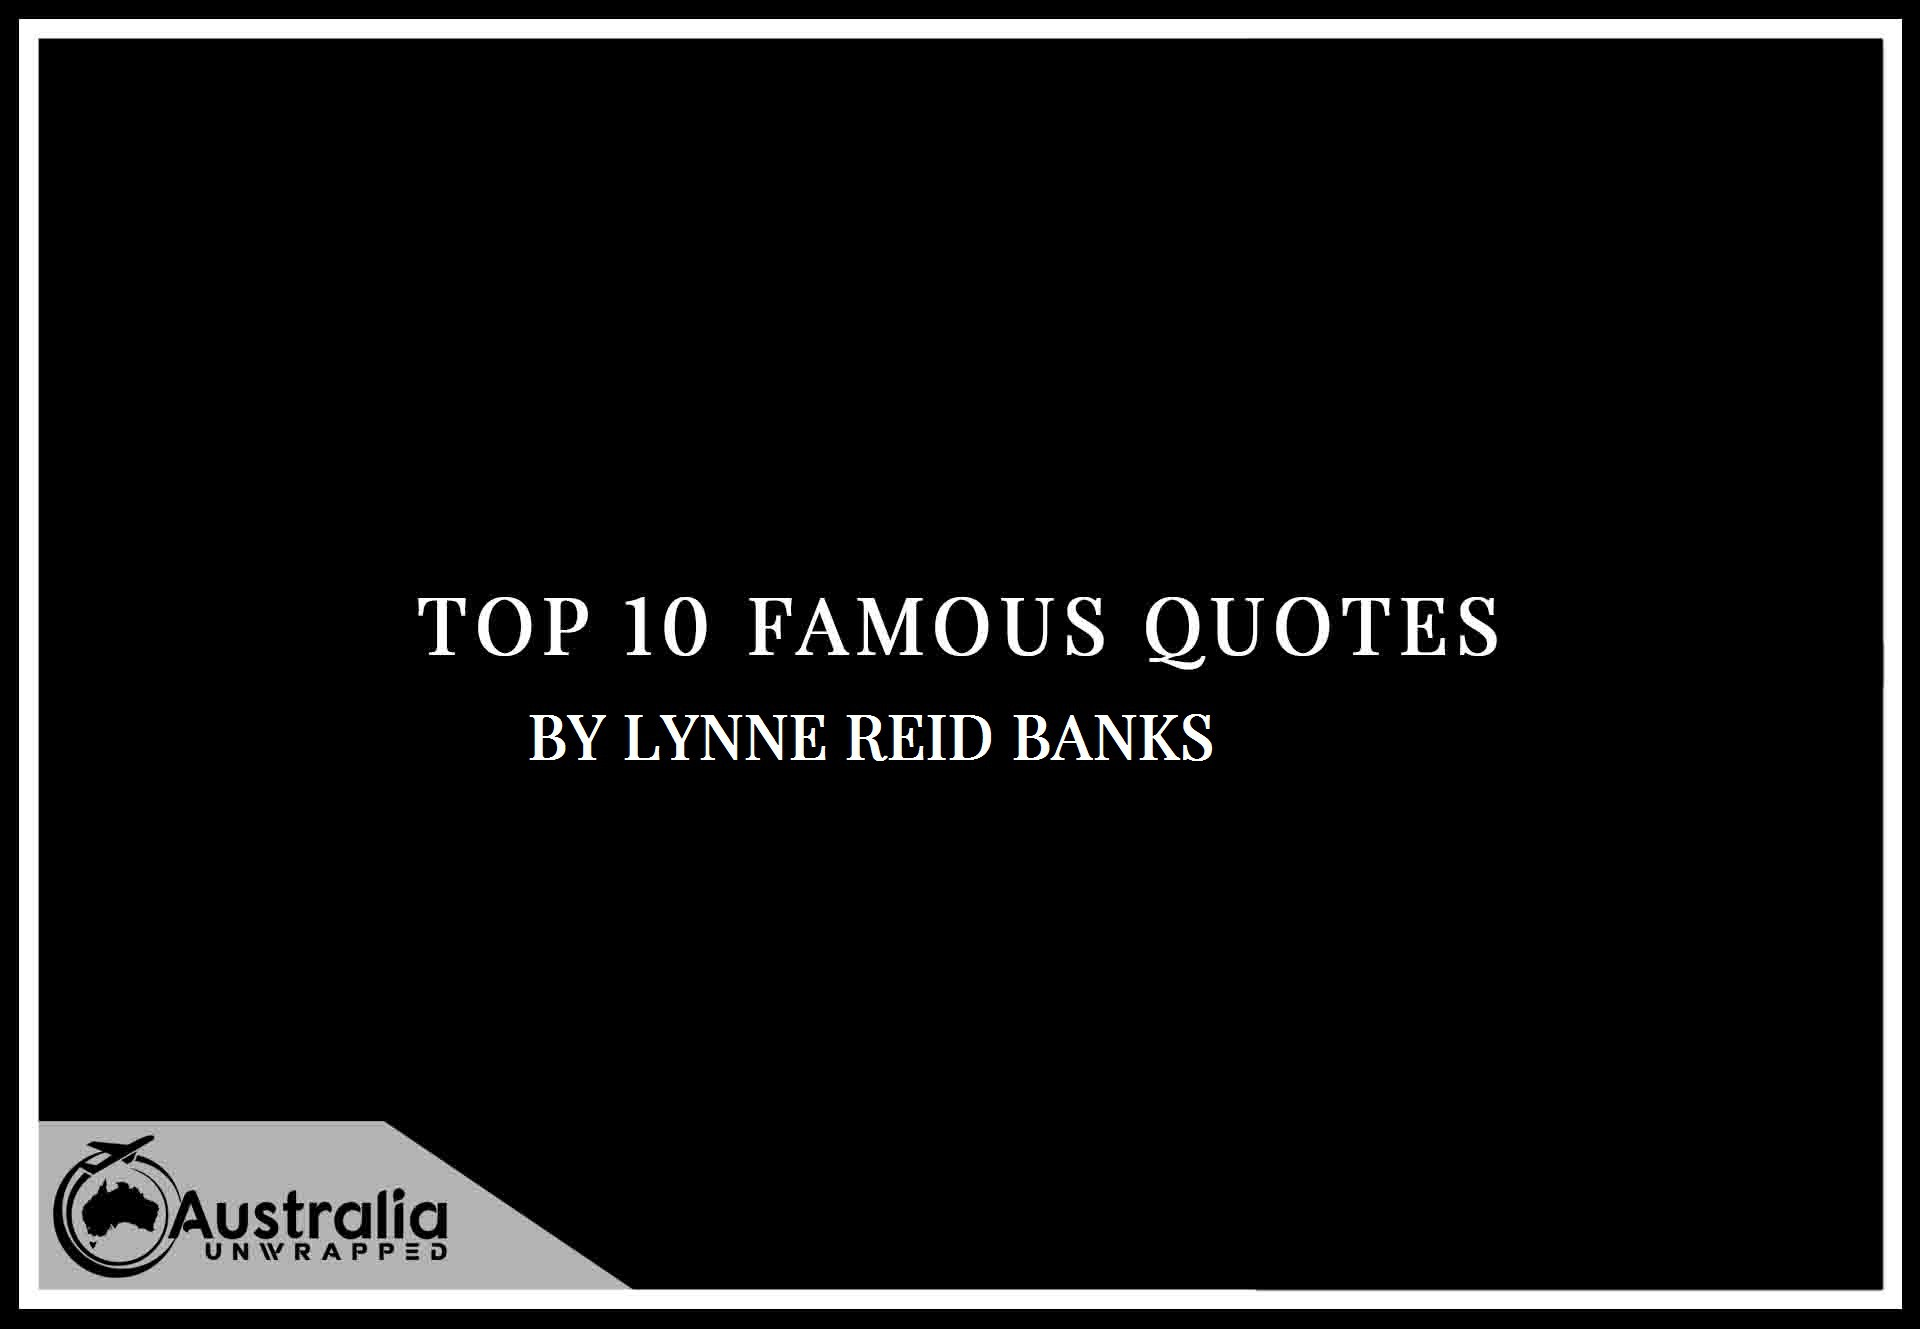 Lynne Reid Banks's Top 10 Popular and Famous Quotes